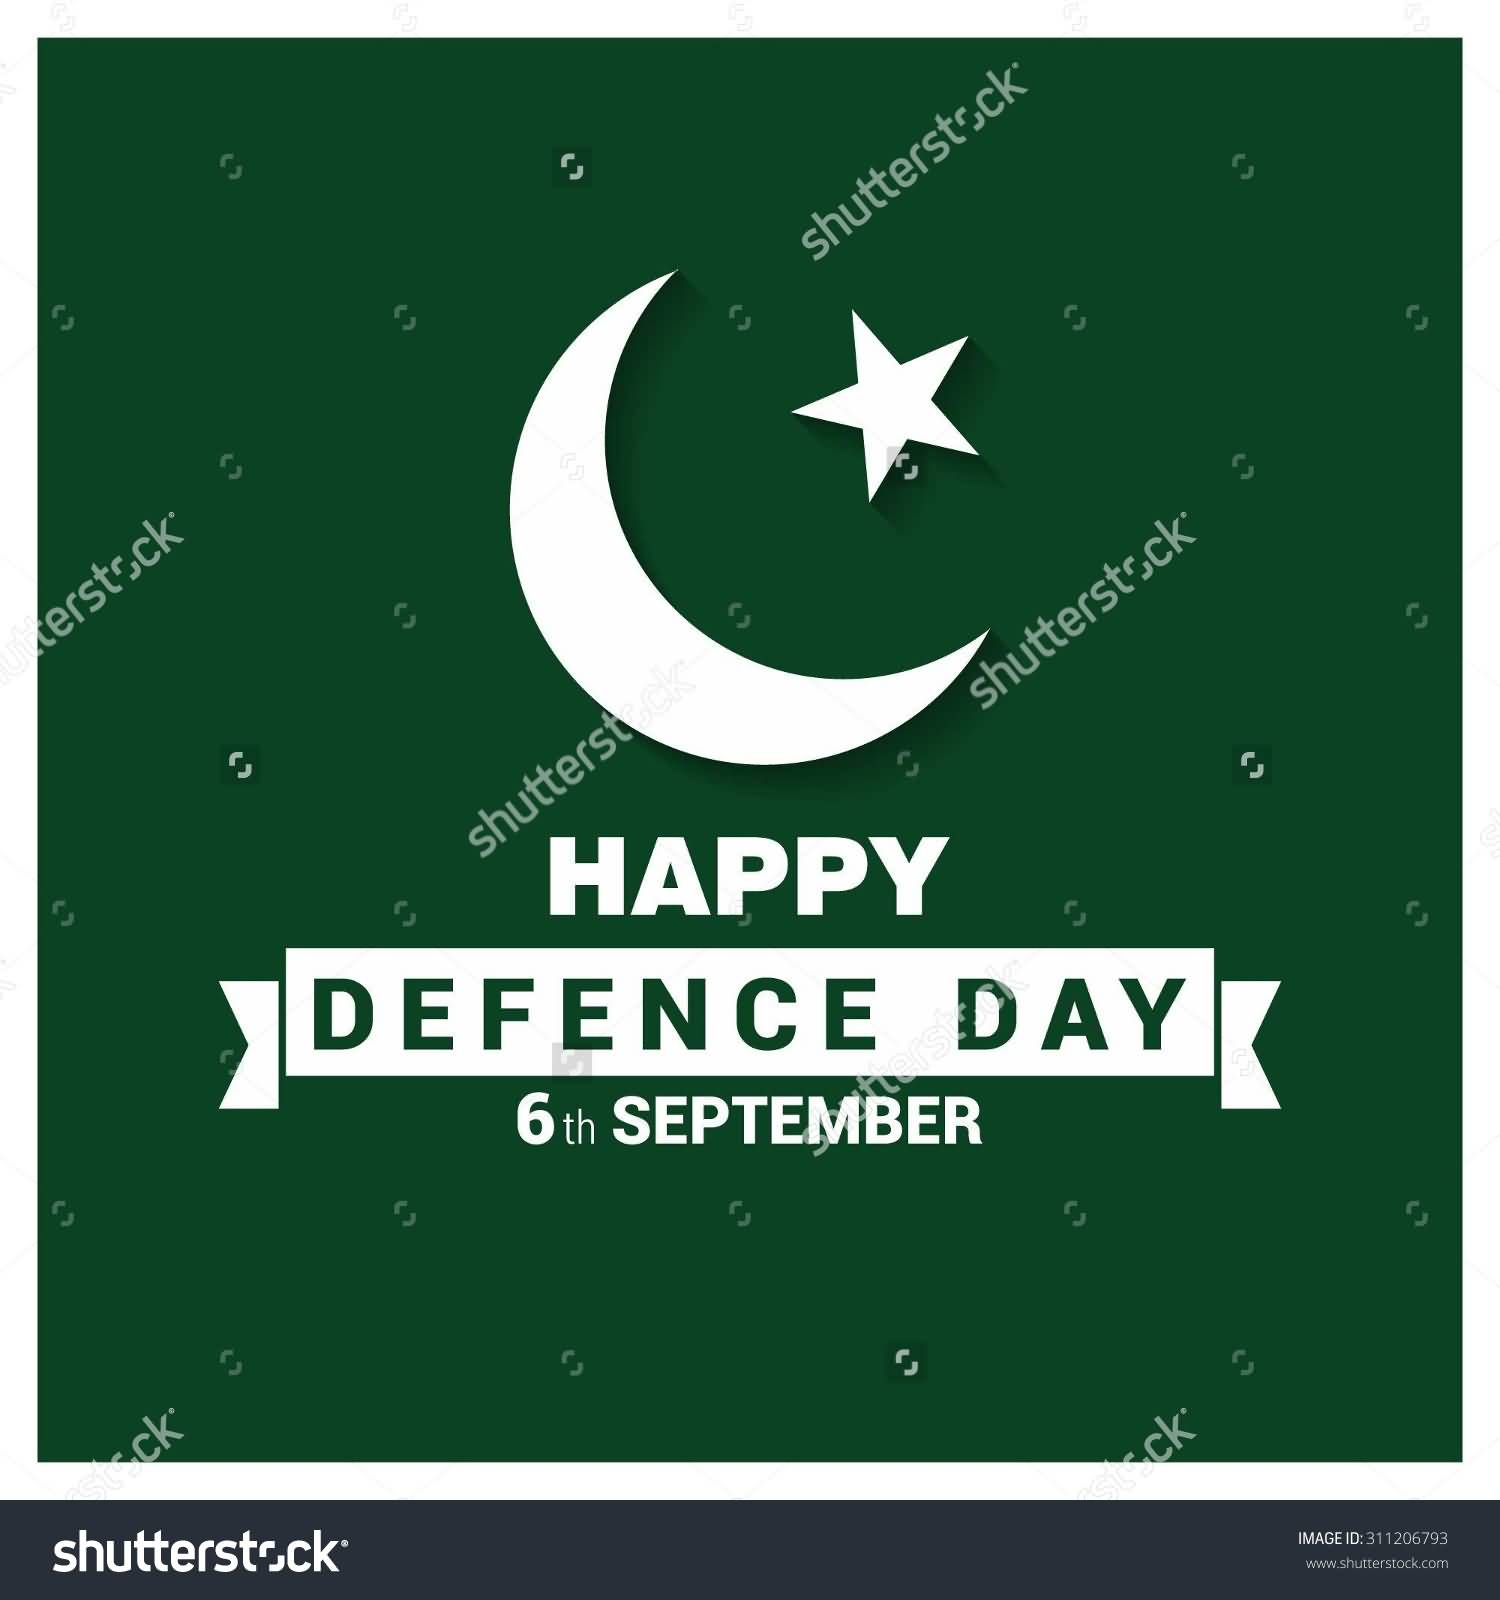 defence day of pakistan essay I presented this ppt in turkey while representing pakistan on an exchange program  presentation on pakistan 165,954 views  officer at defence.